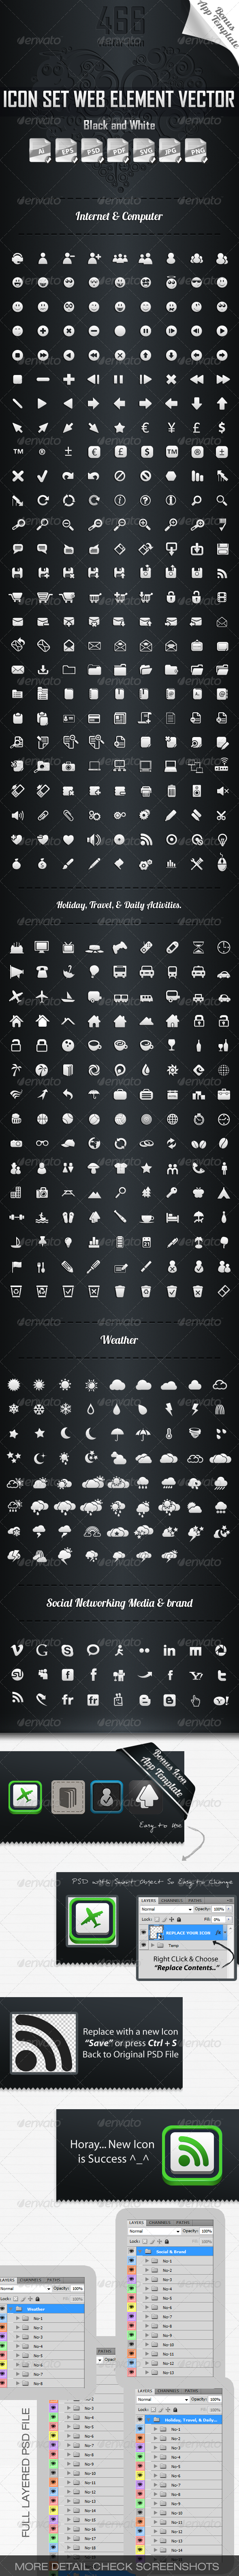 GraphicRiver 446 Icons Pixel Perfect 3226198